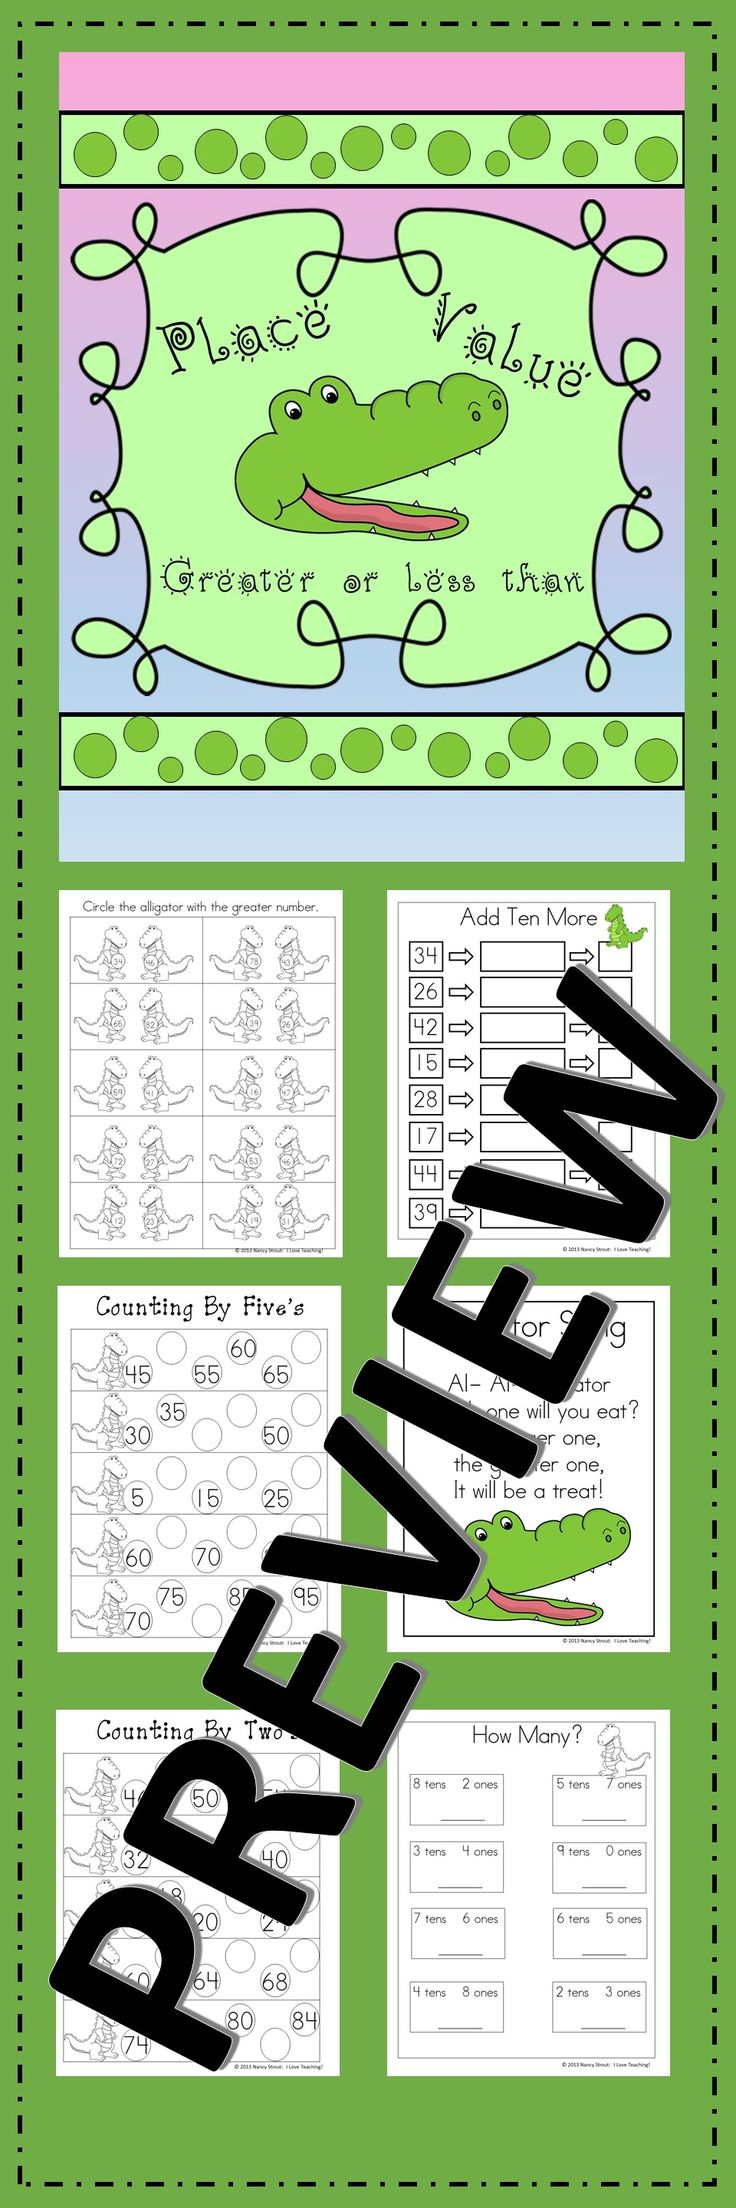 Place Value Greater Than and; Less Than. This Place Value Unit is Common Core Aligned. I have included both a color version and black & white. This packet includes an original place value song, poster, games, printables and more. Place Value Poster Place value poster Spin Ten More Game Write How Many Add Ten More How Many? Comparing Numbers Tic-Tac-Toe Game Counting By Two's Counting By Five's Alligator Number Cards Numerical Order What Comes Before Alligator Song